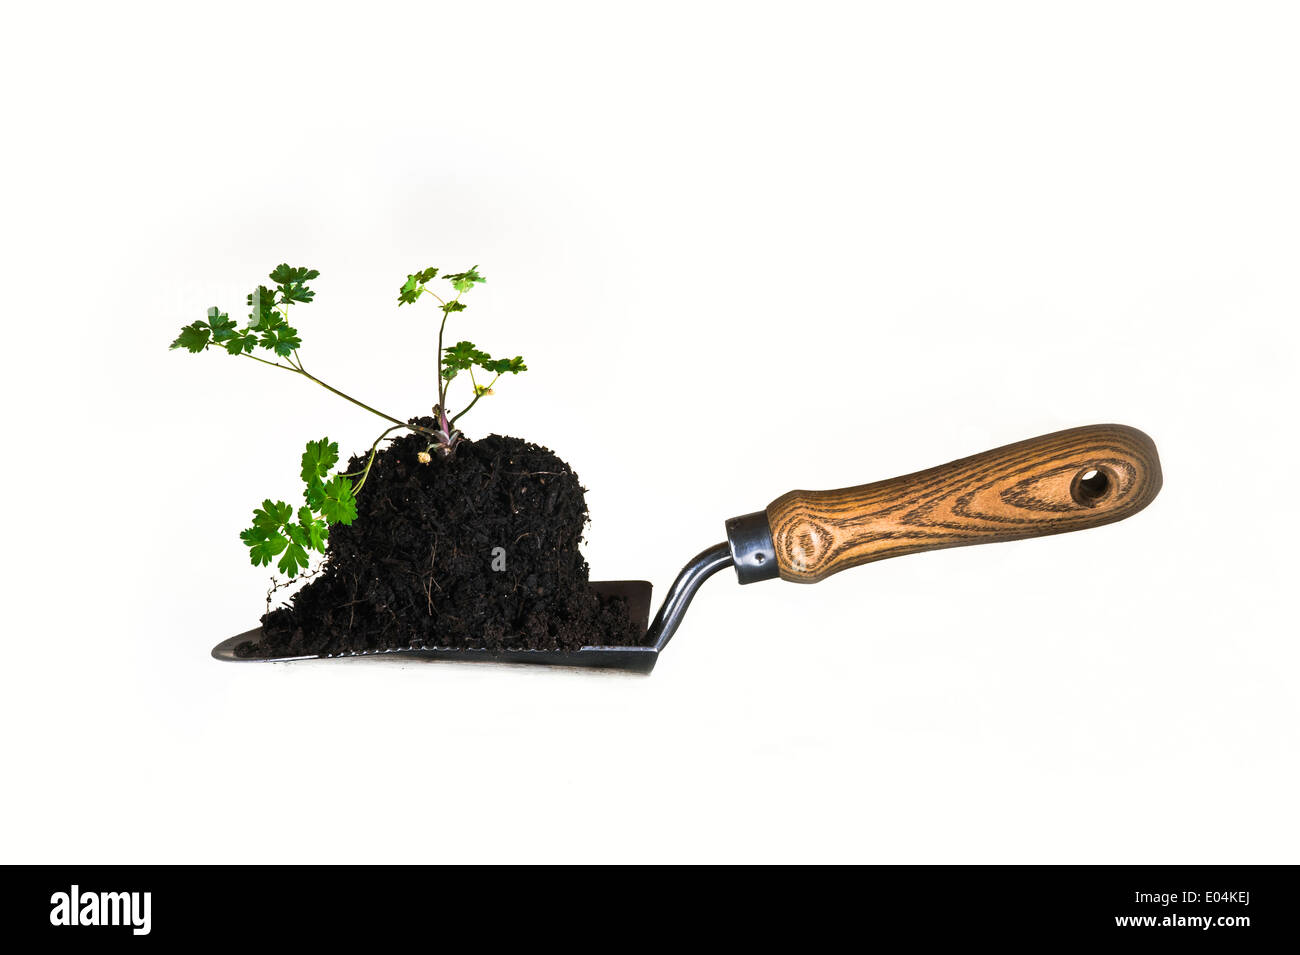 Young plant on a trowel for transplanting. - Stock Image